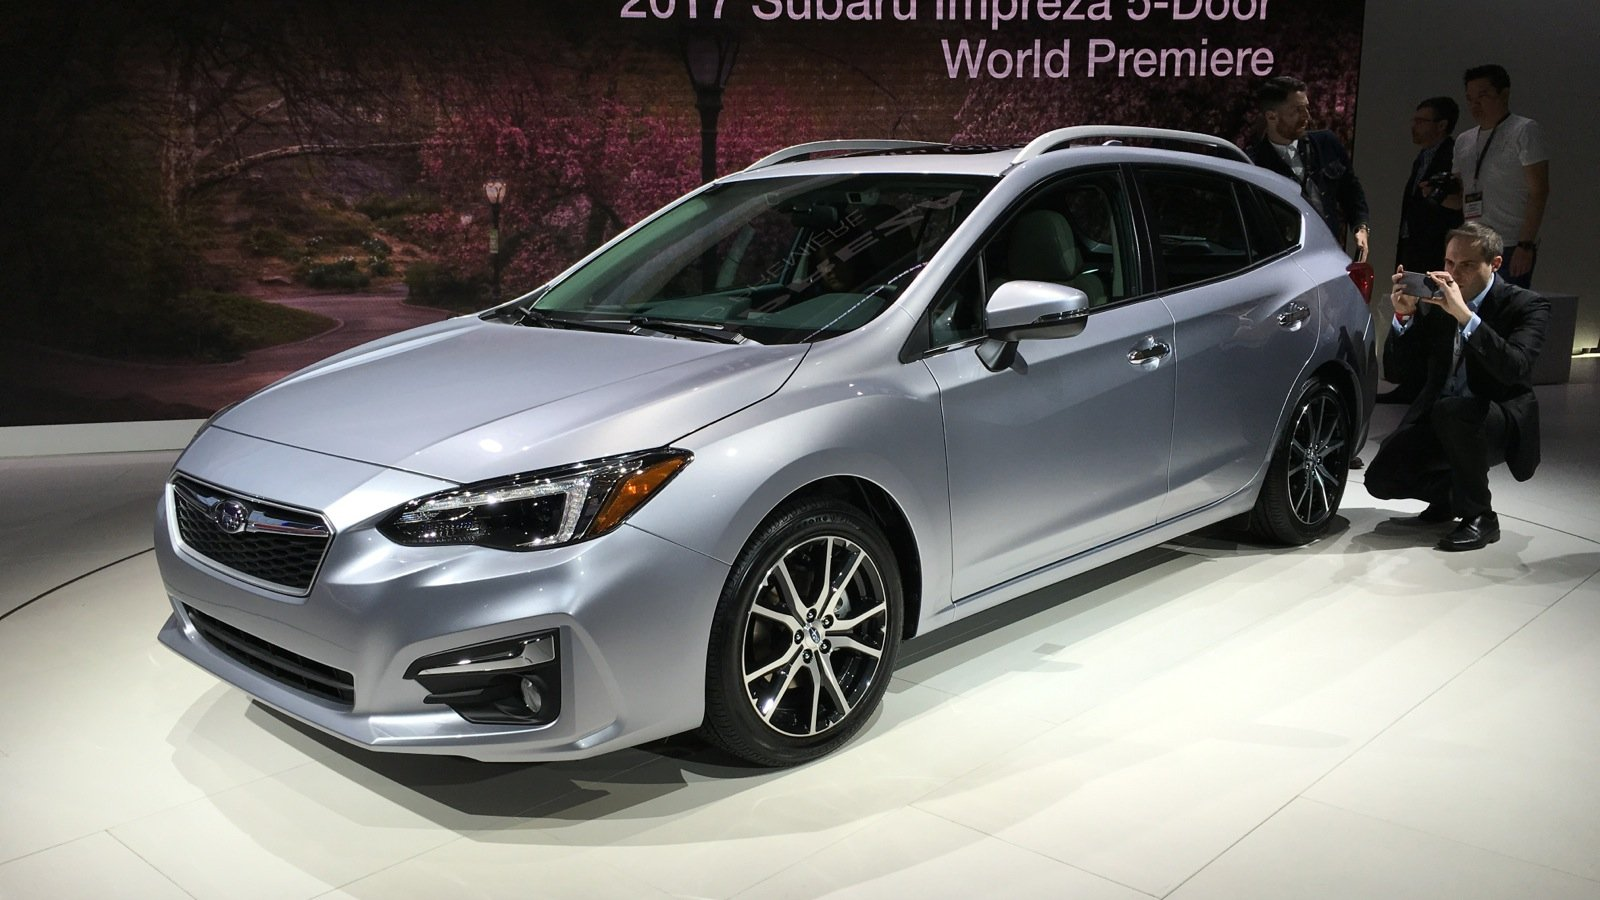 2017 subaru impreza hatch and sedan gallery photos 1 of 20. Black Bedroom Furniture Sets. Home Design Ideas